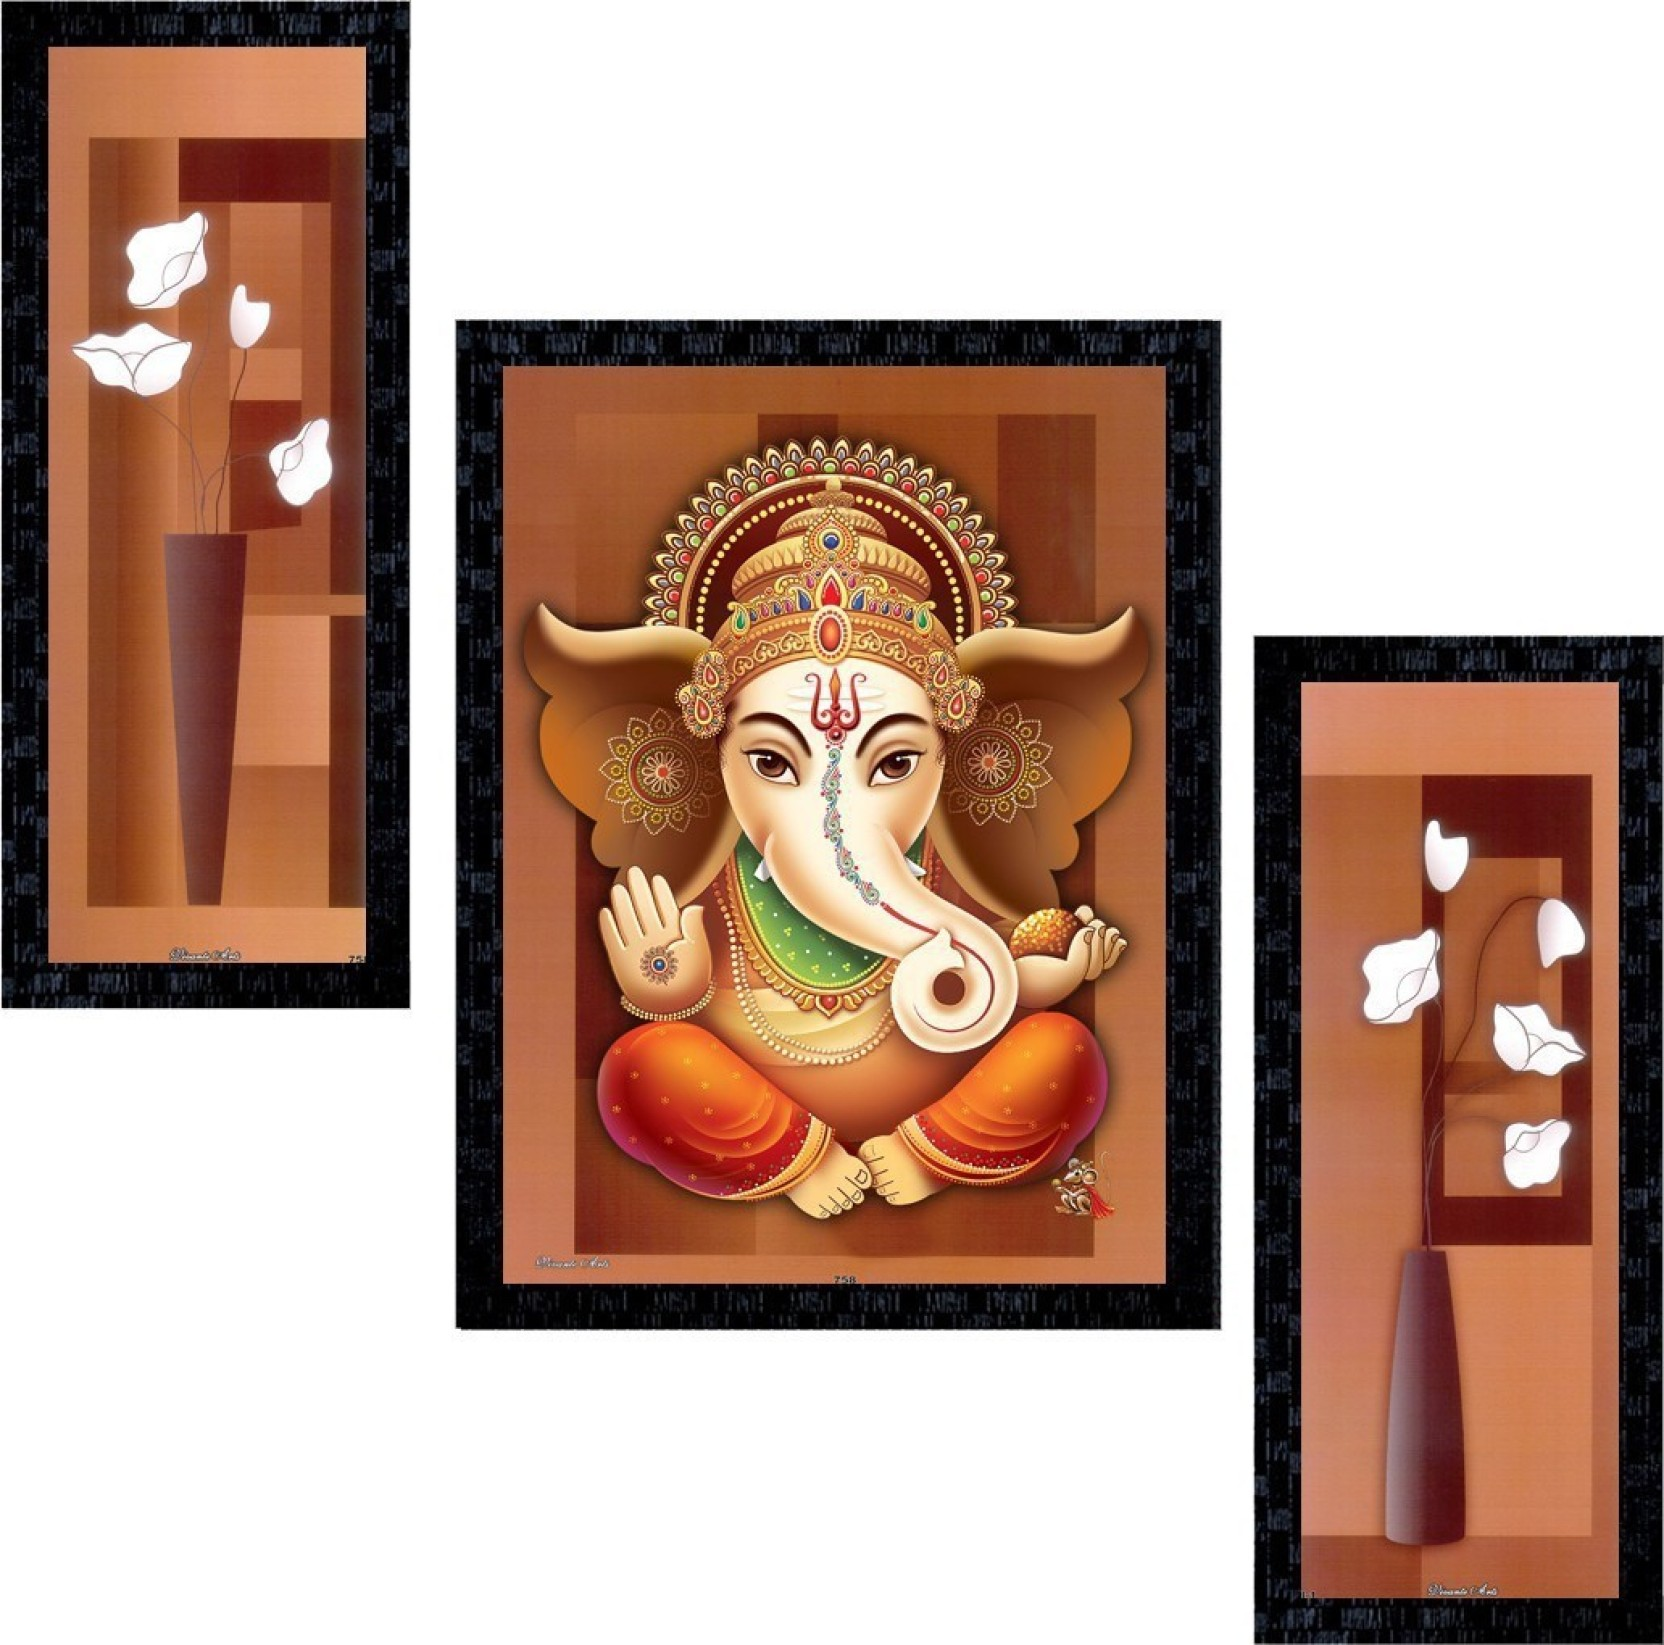 Janki online set of 3 god ganesha modern art glass framed wall painting for home office and temple and home décor digital reprint 14 inch x 11 inch painting